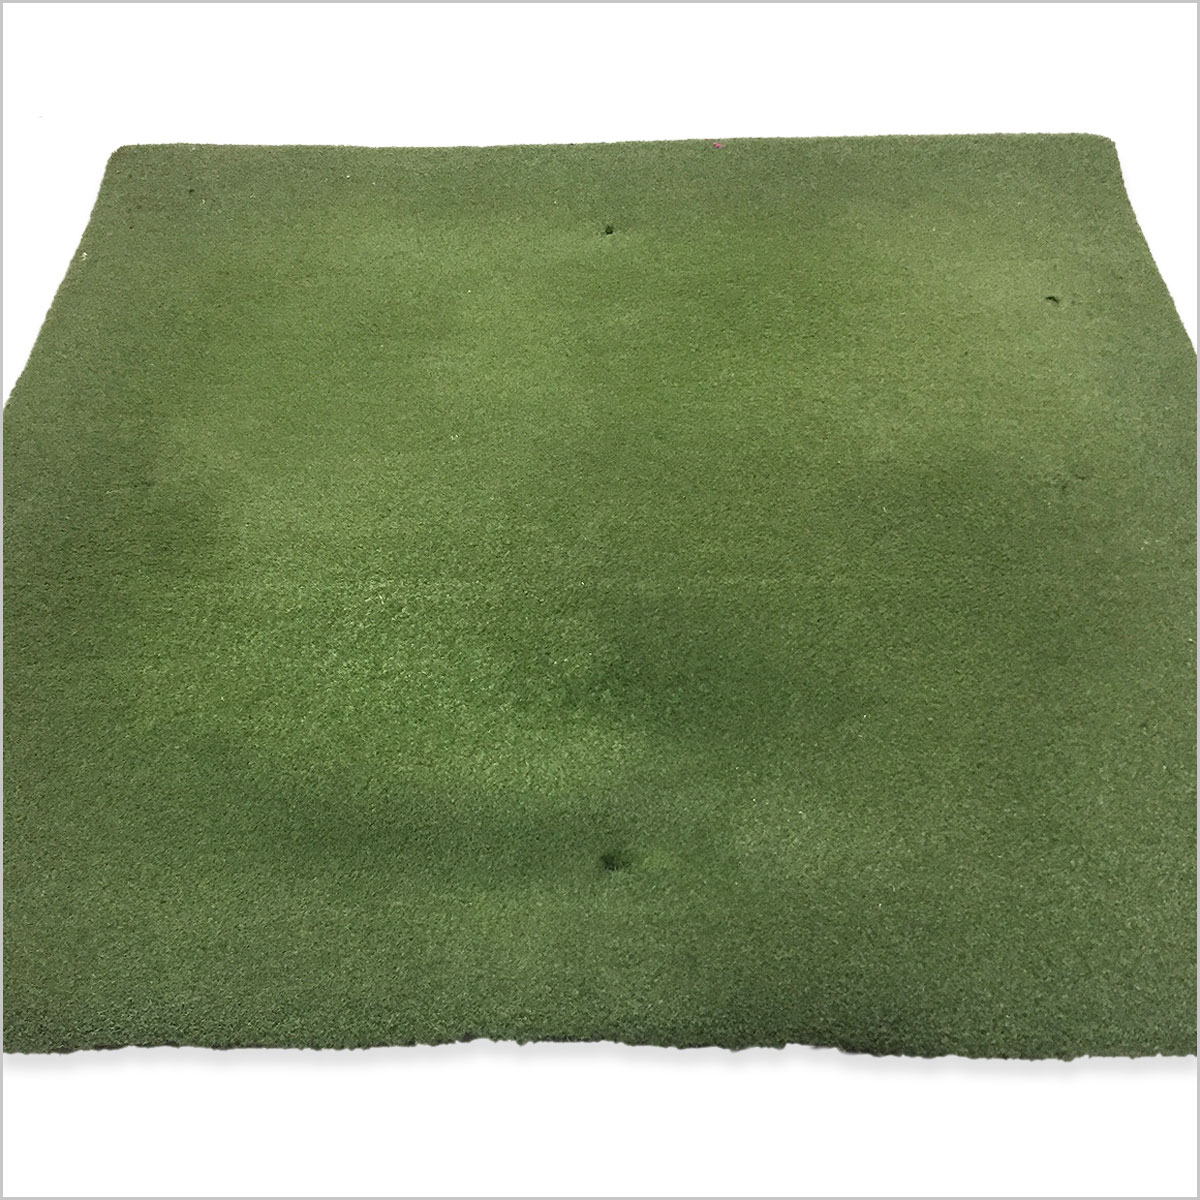 Used driving mat